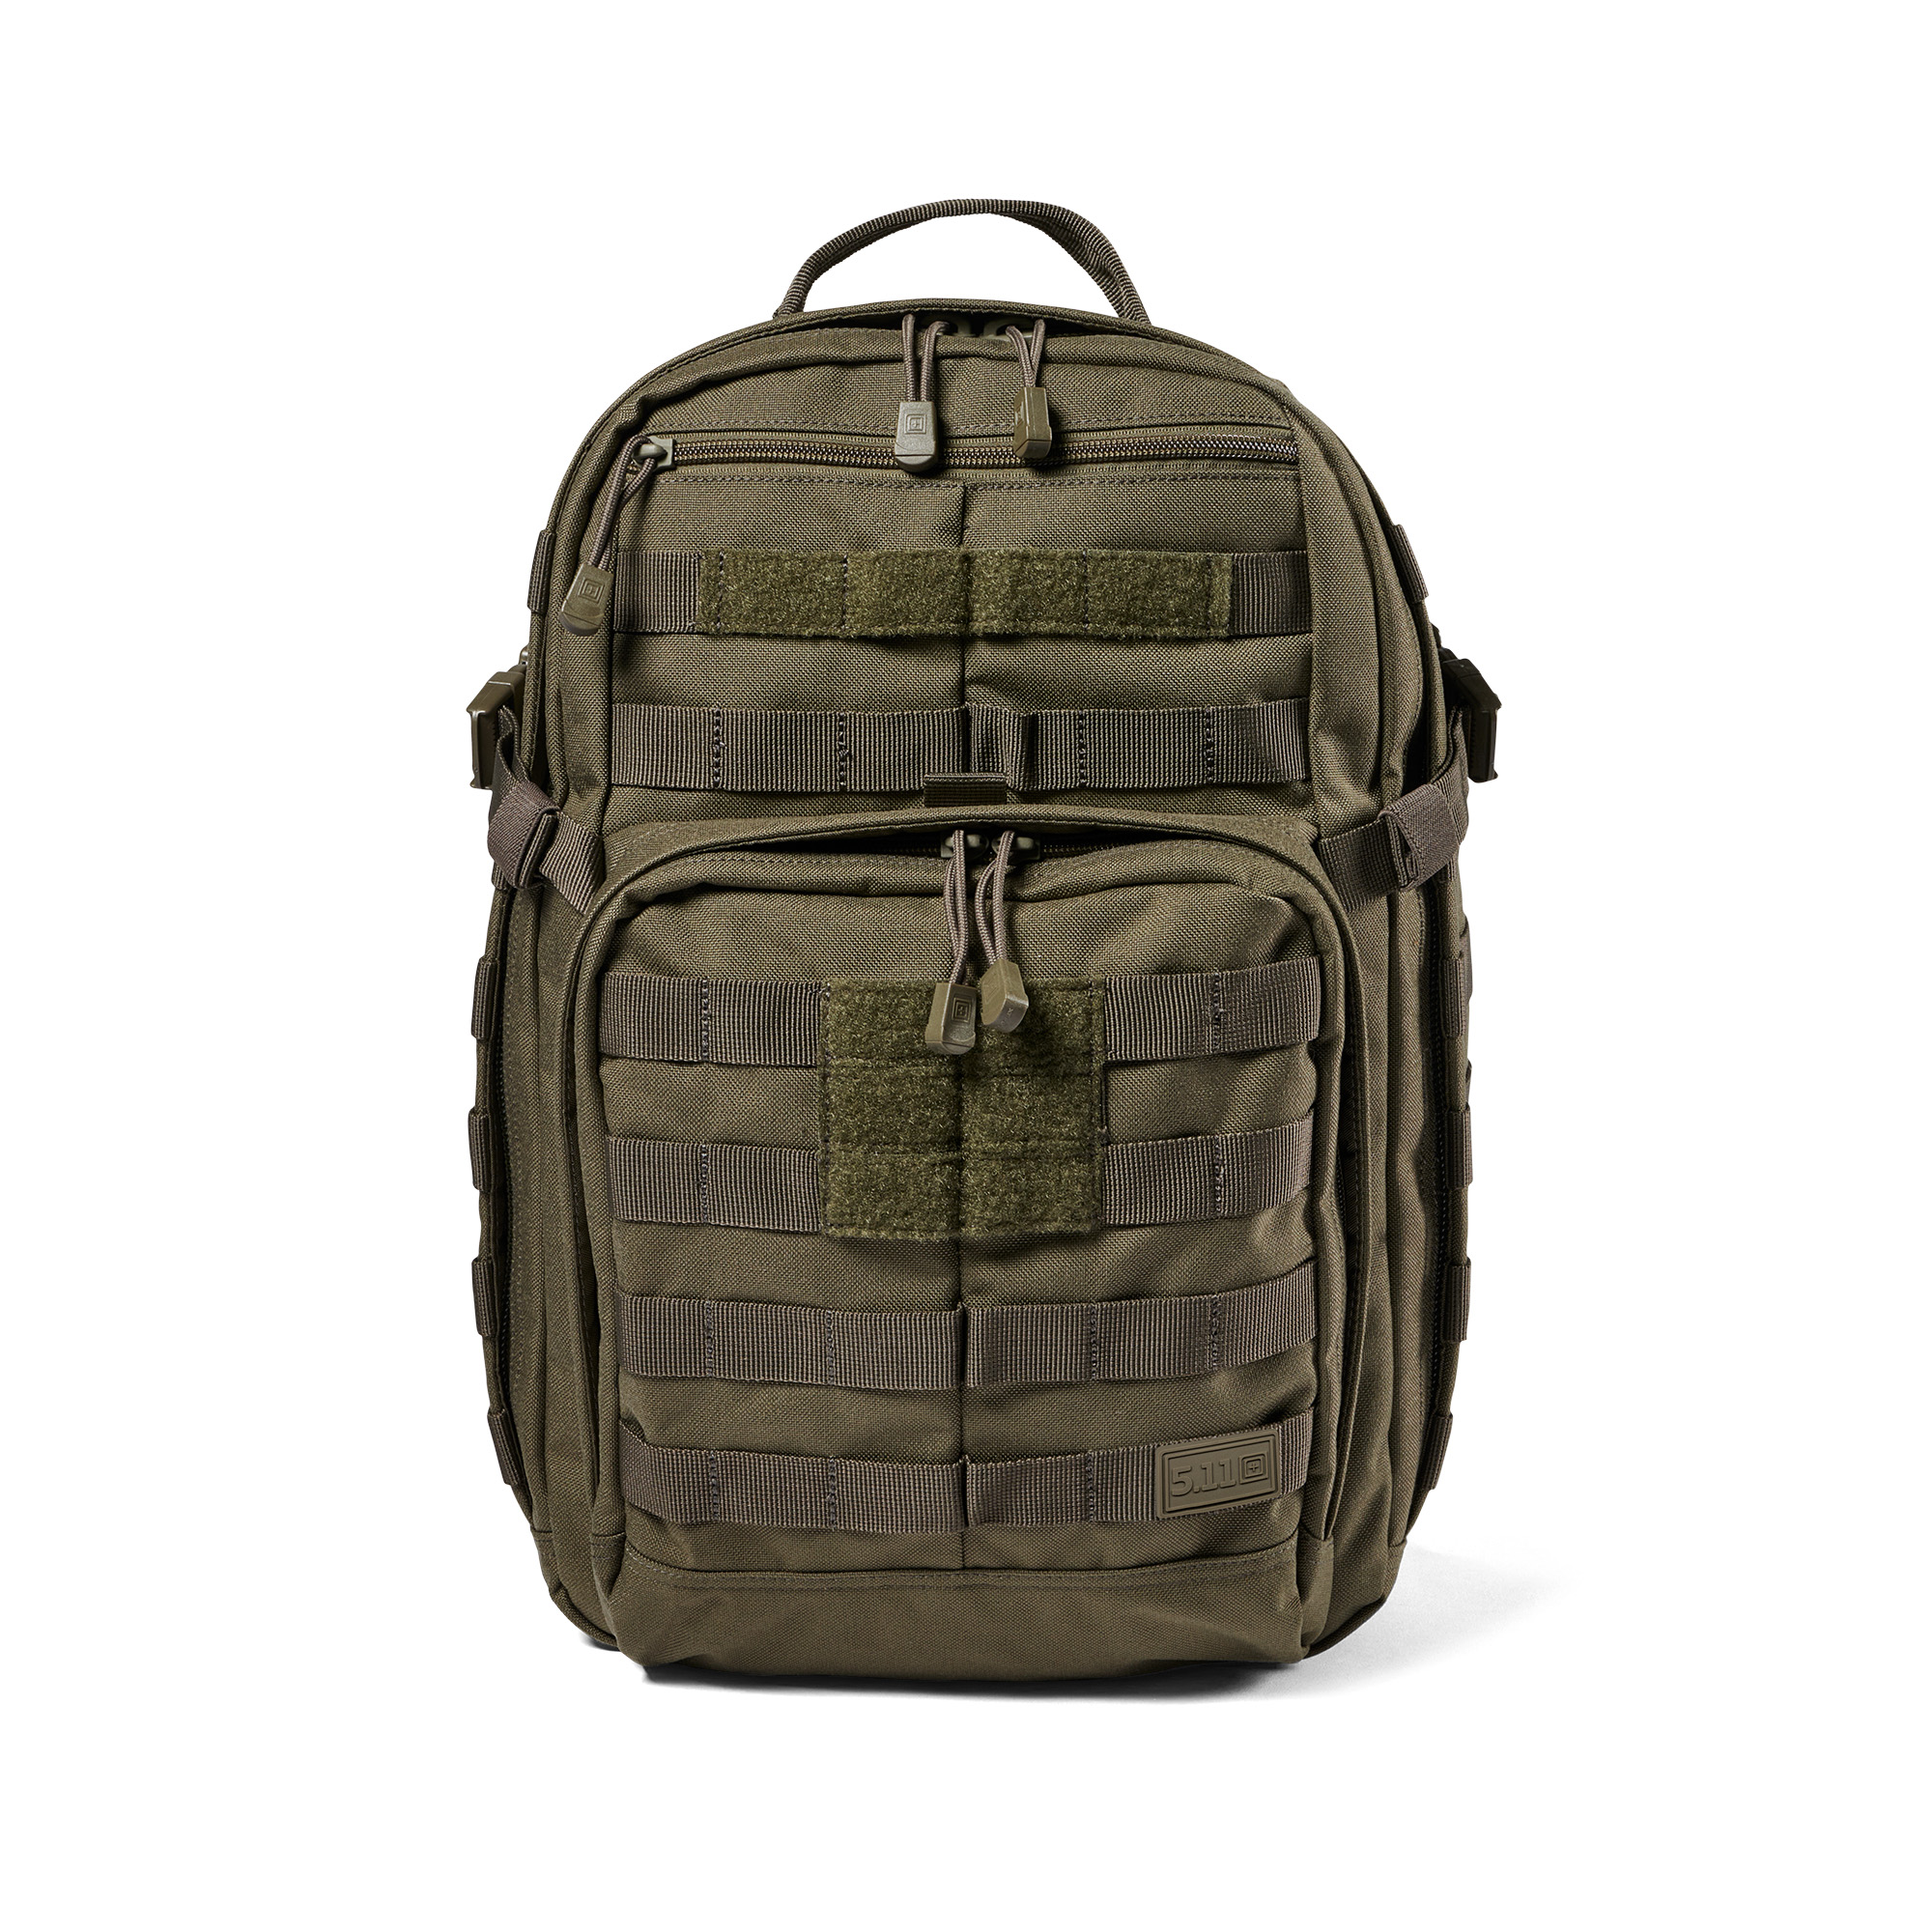 Balo 5.11 Tactical Rush 12 2.0 – Ranger Green